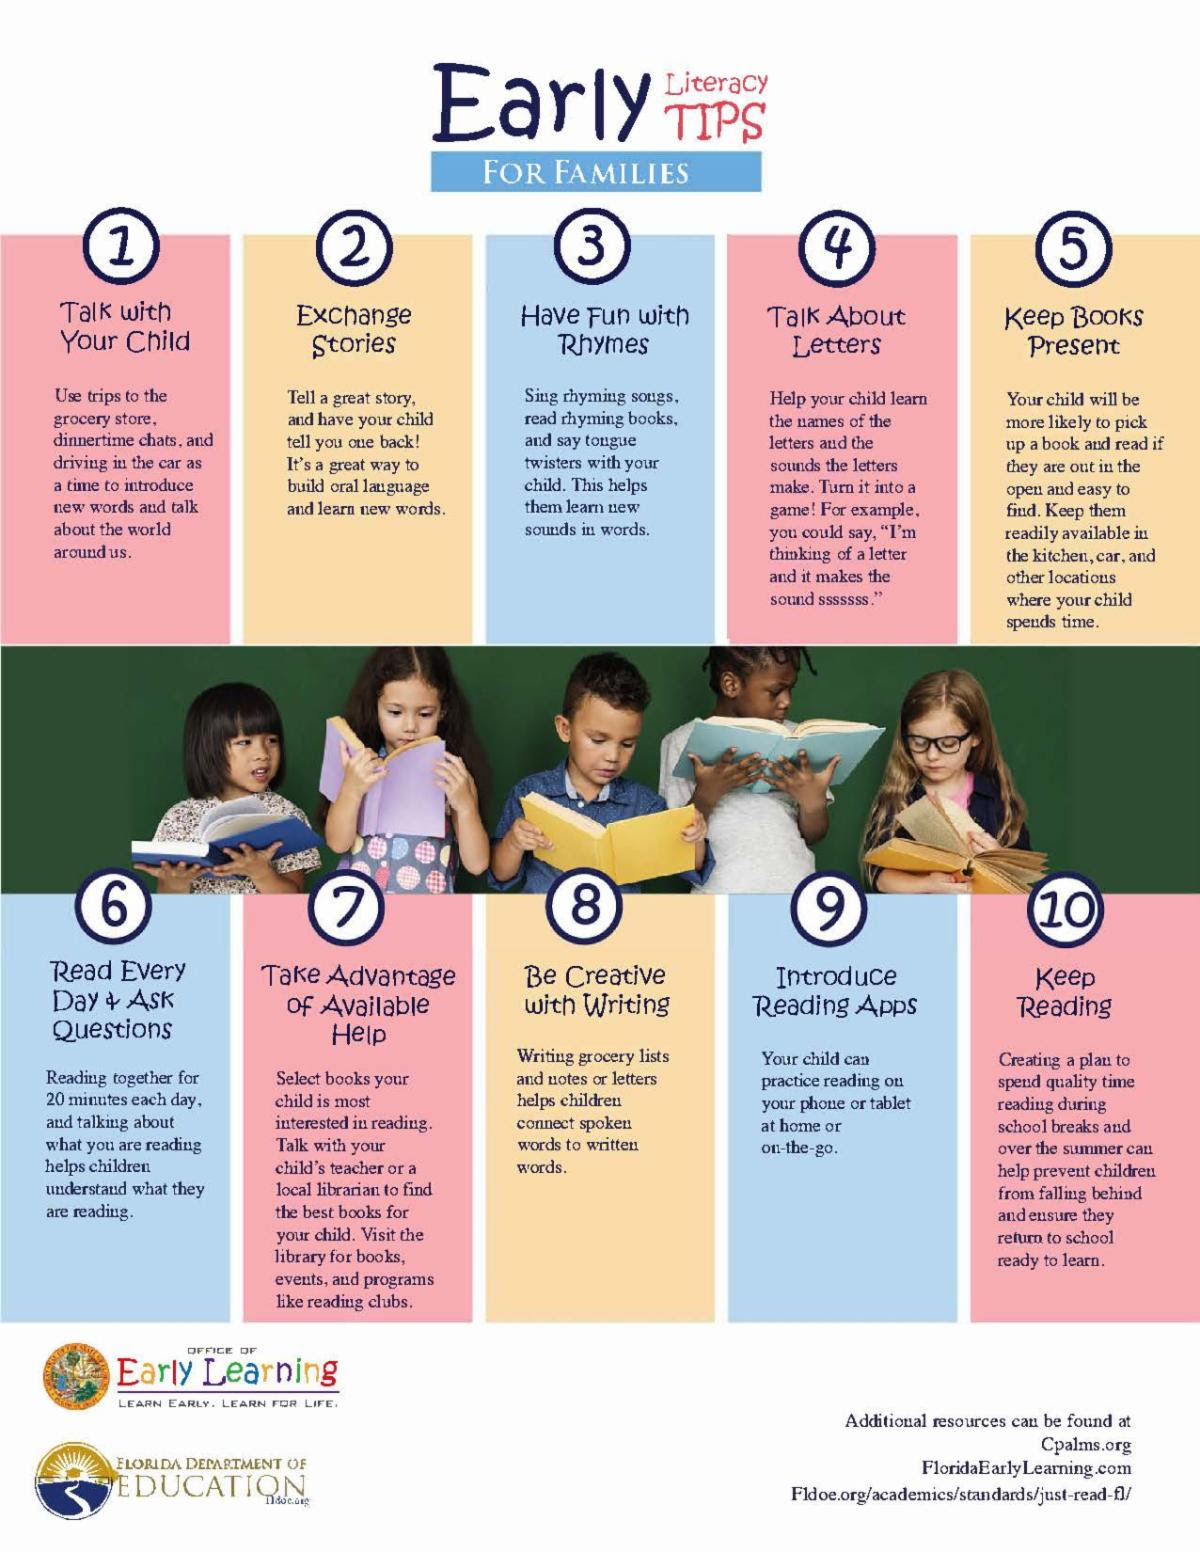 Promote Early Literacy